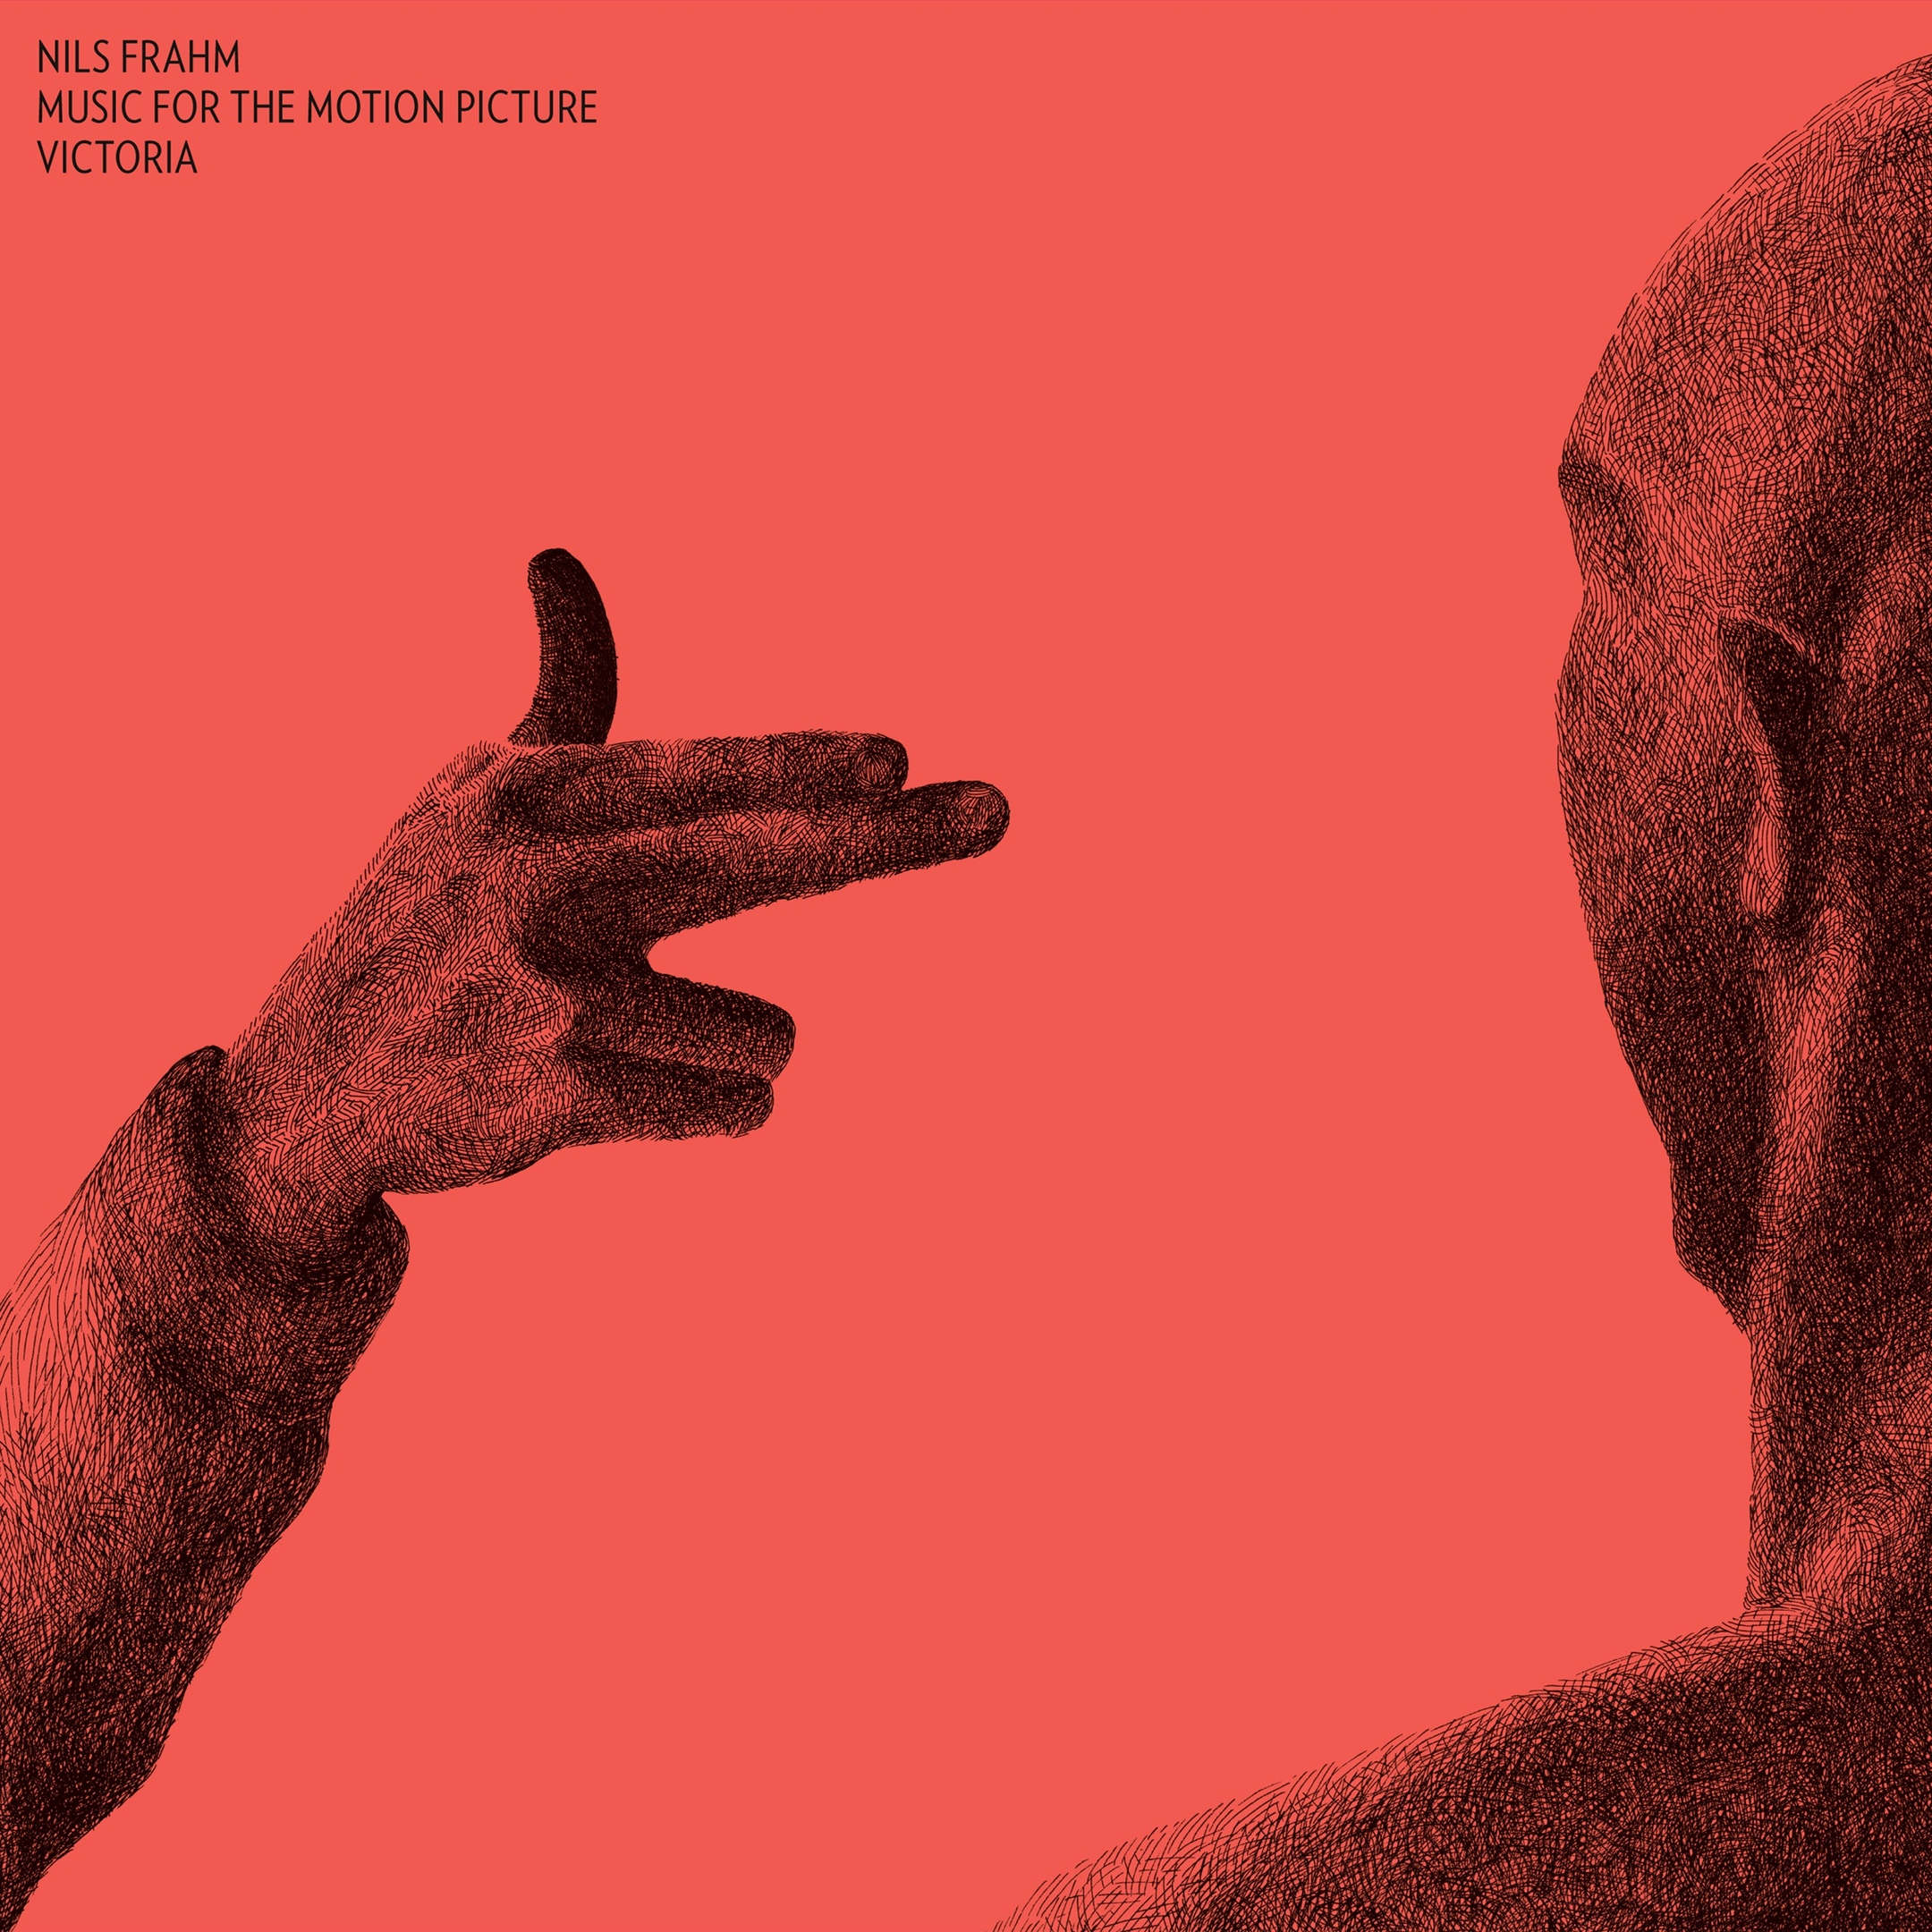 nils frahm album Music for the Motion Picture Victoria